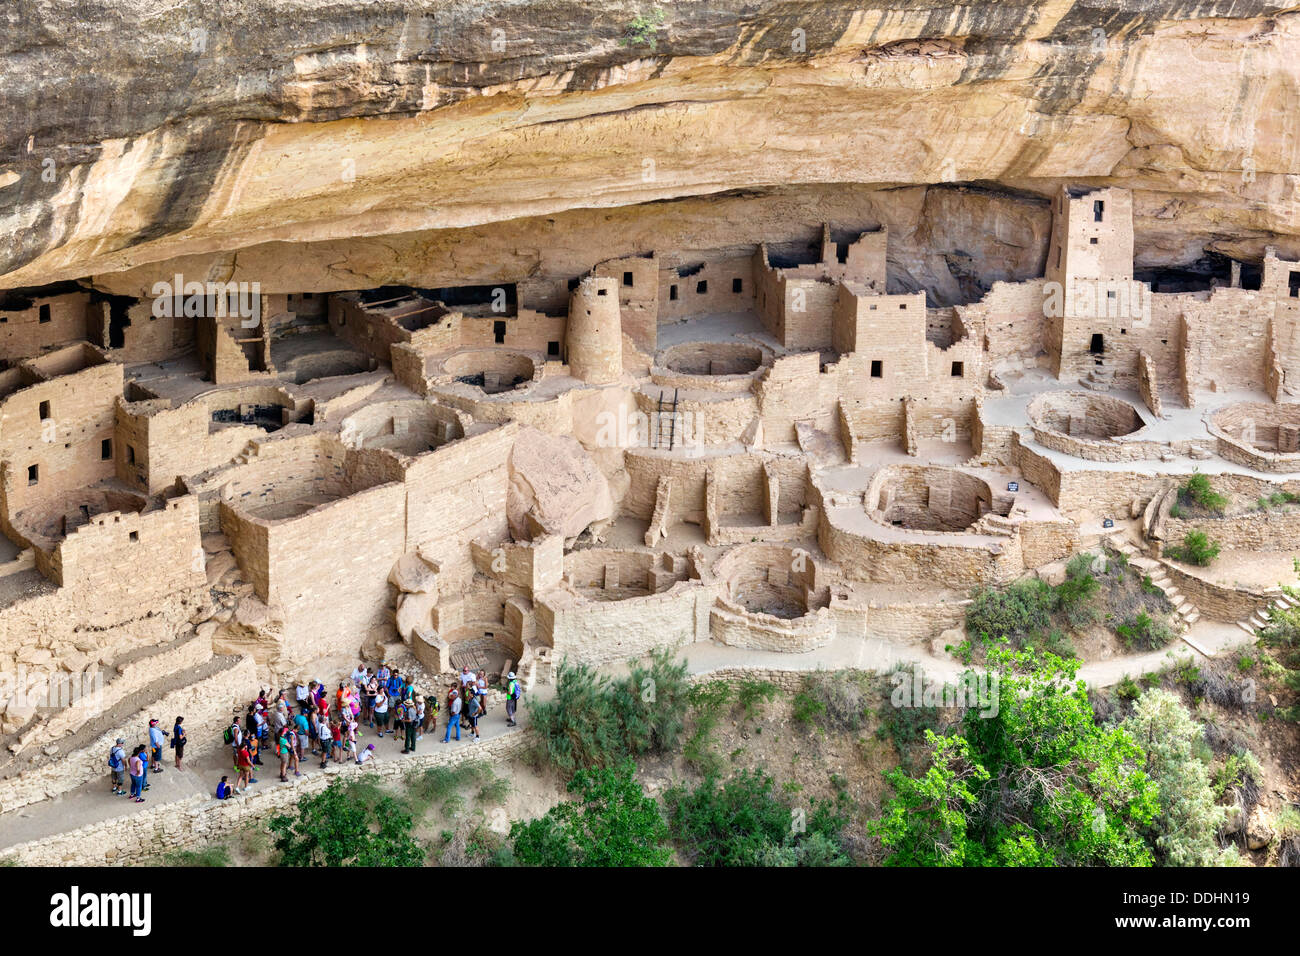 Group of tourists visiting the Cliff Palace, ancient Anasazi pueblo dwellings, Mesa Verde National Park, Cortez, USA - Stock Image